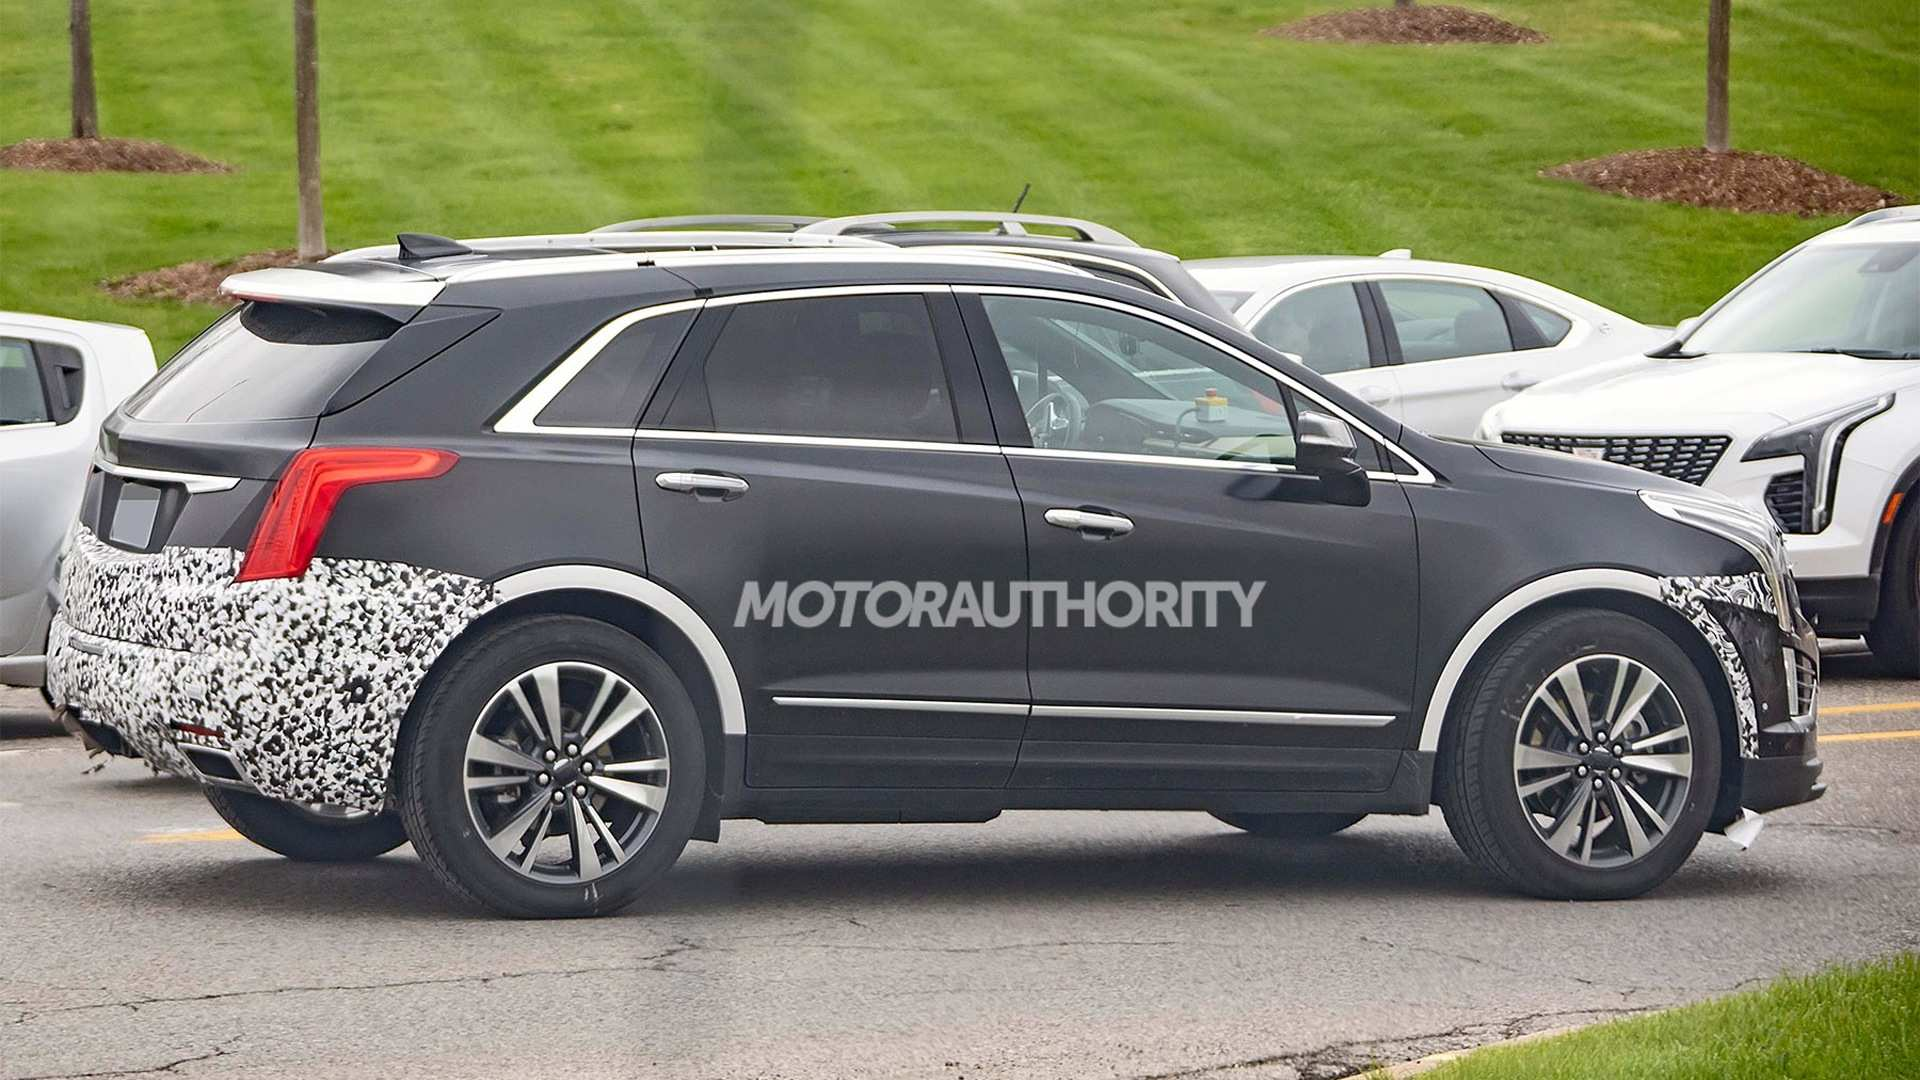 40 A Spy Shots Cadillac Xt5 Specs And Review